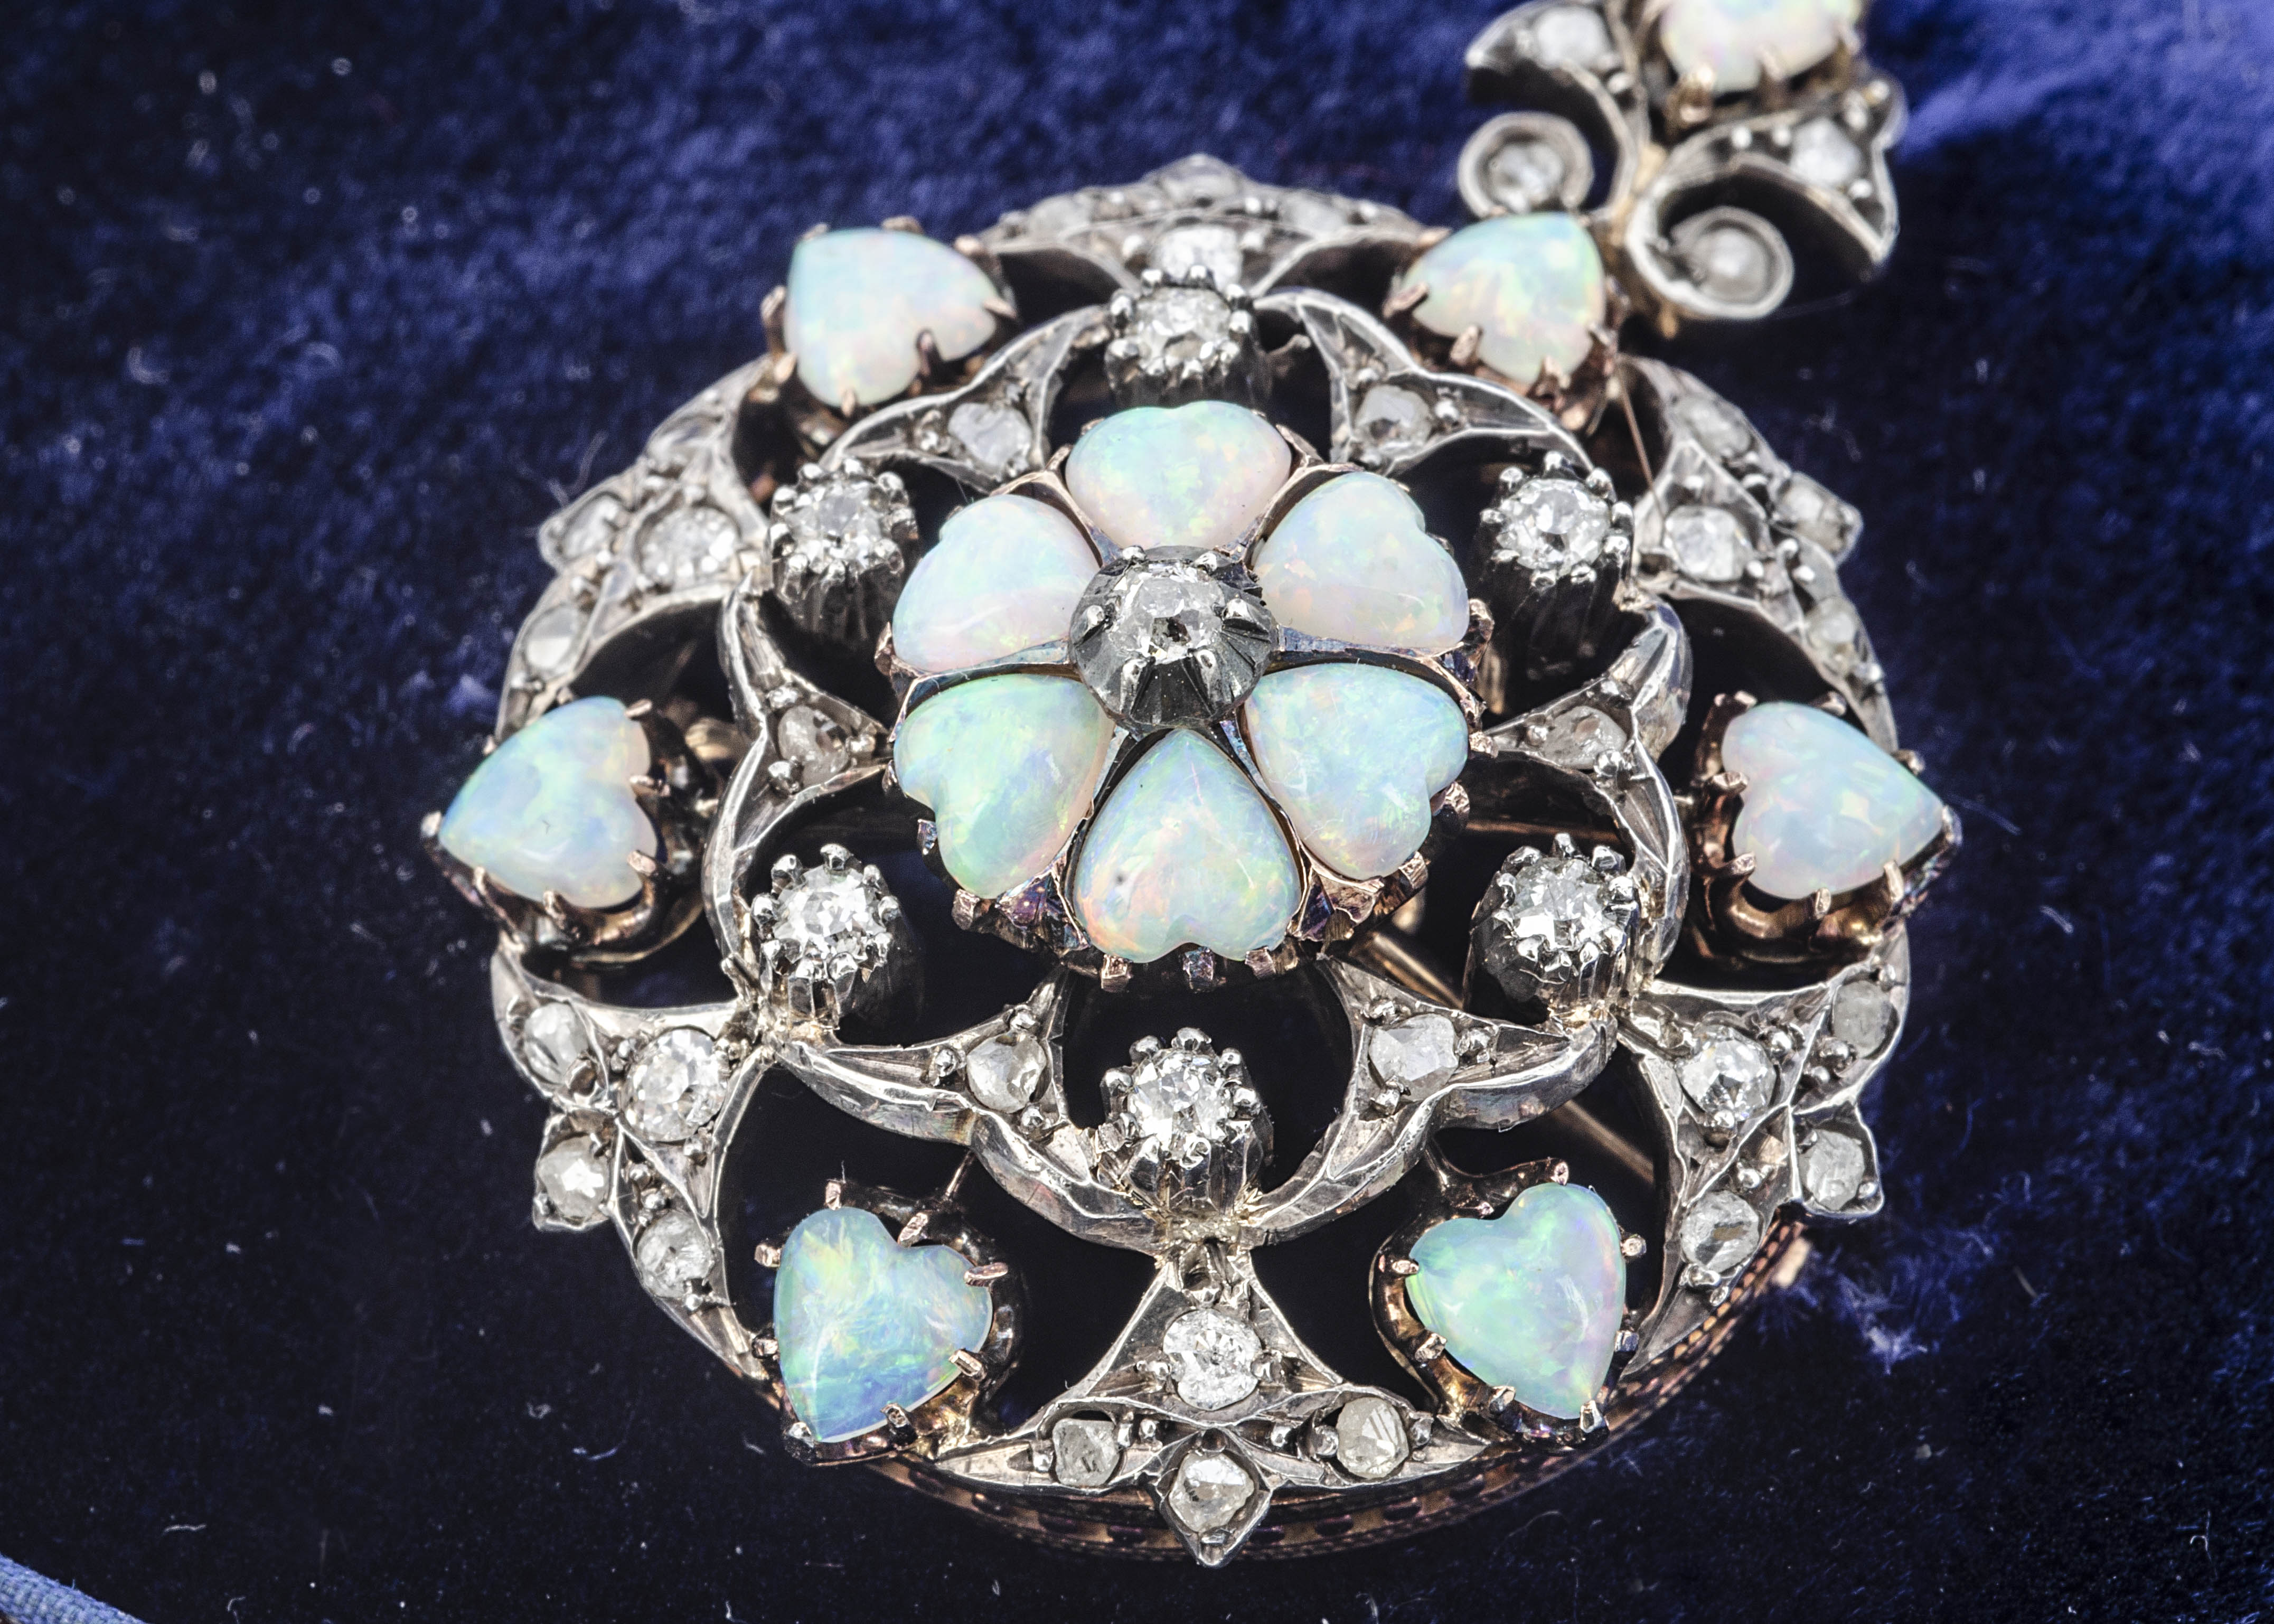 An Edwardian circular opal and diamond brooch or pendant, of target shape with central flower head - Image 2 of 2